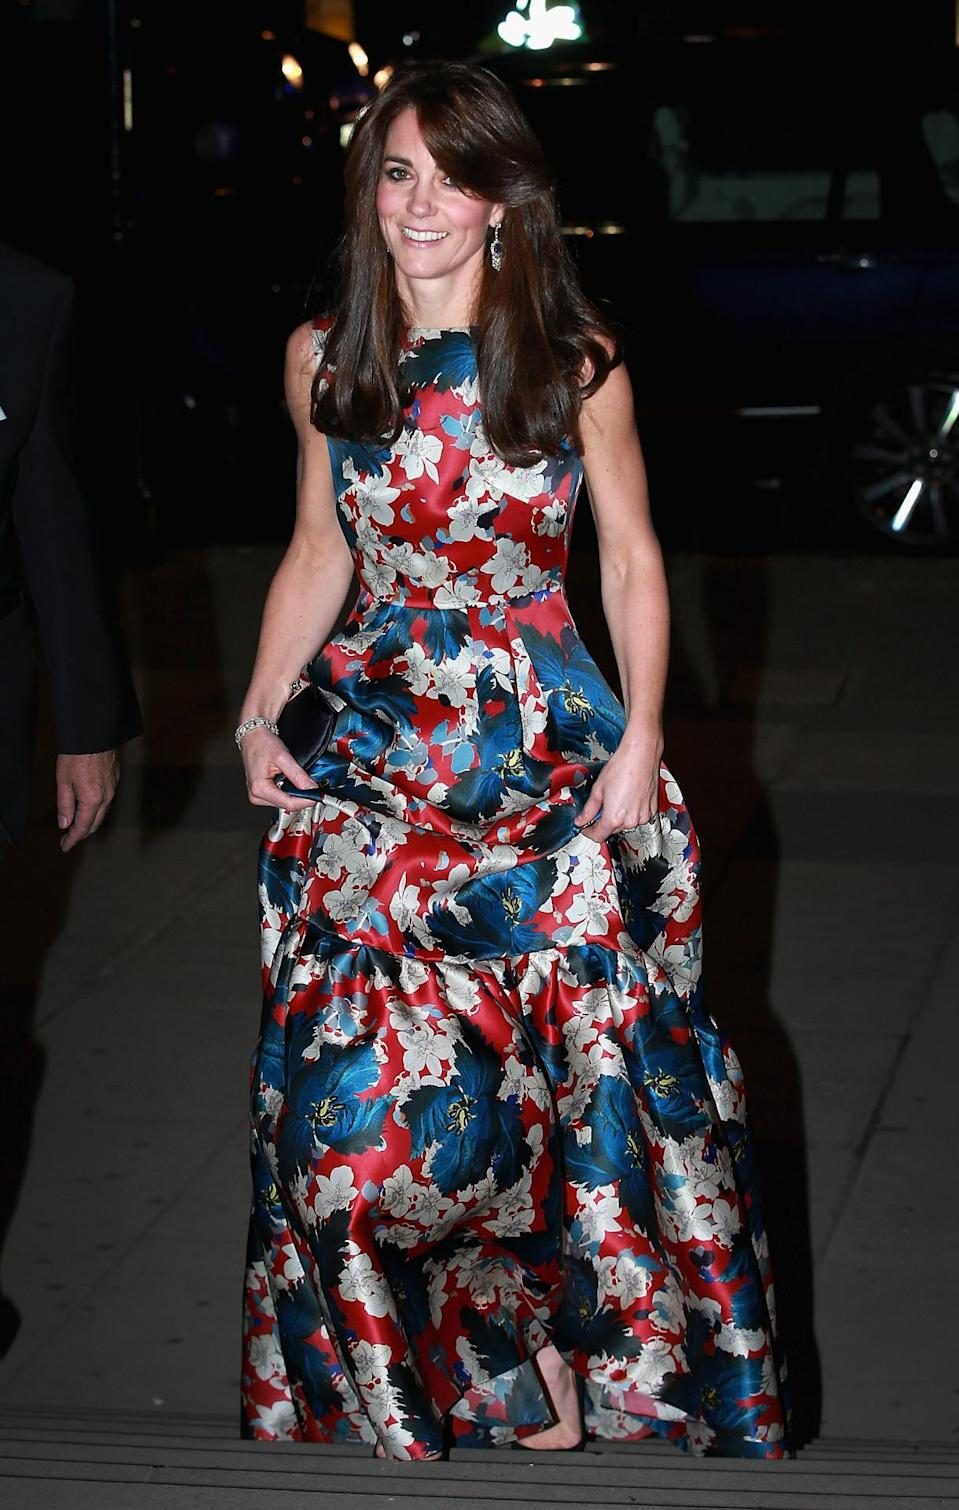 <p>The Duchess went for an unusually louder look for a dinner in London. Dressed in a floral silk gown by Erdem, she carried an Anya Hindmarch clutch and finished with suede Jimmy Choos. </p><p><i>[Photo: PA]</i></p>